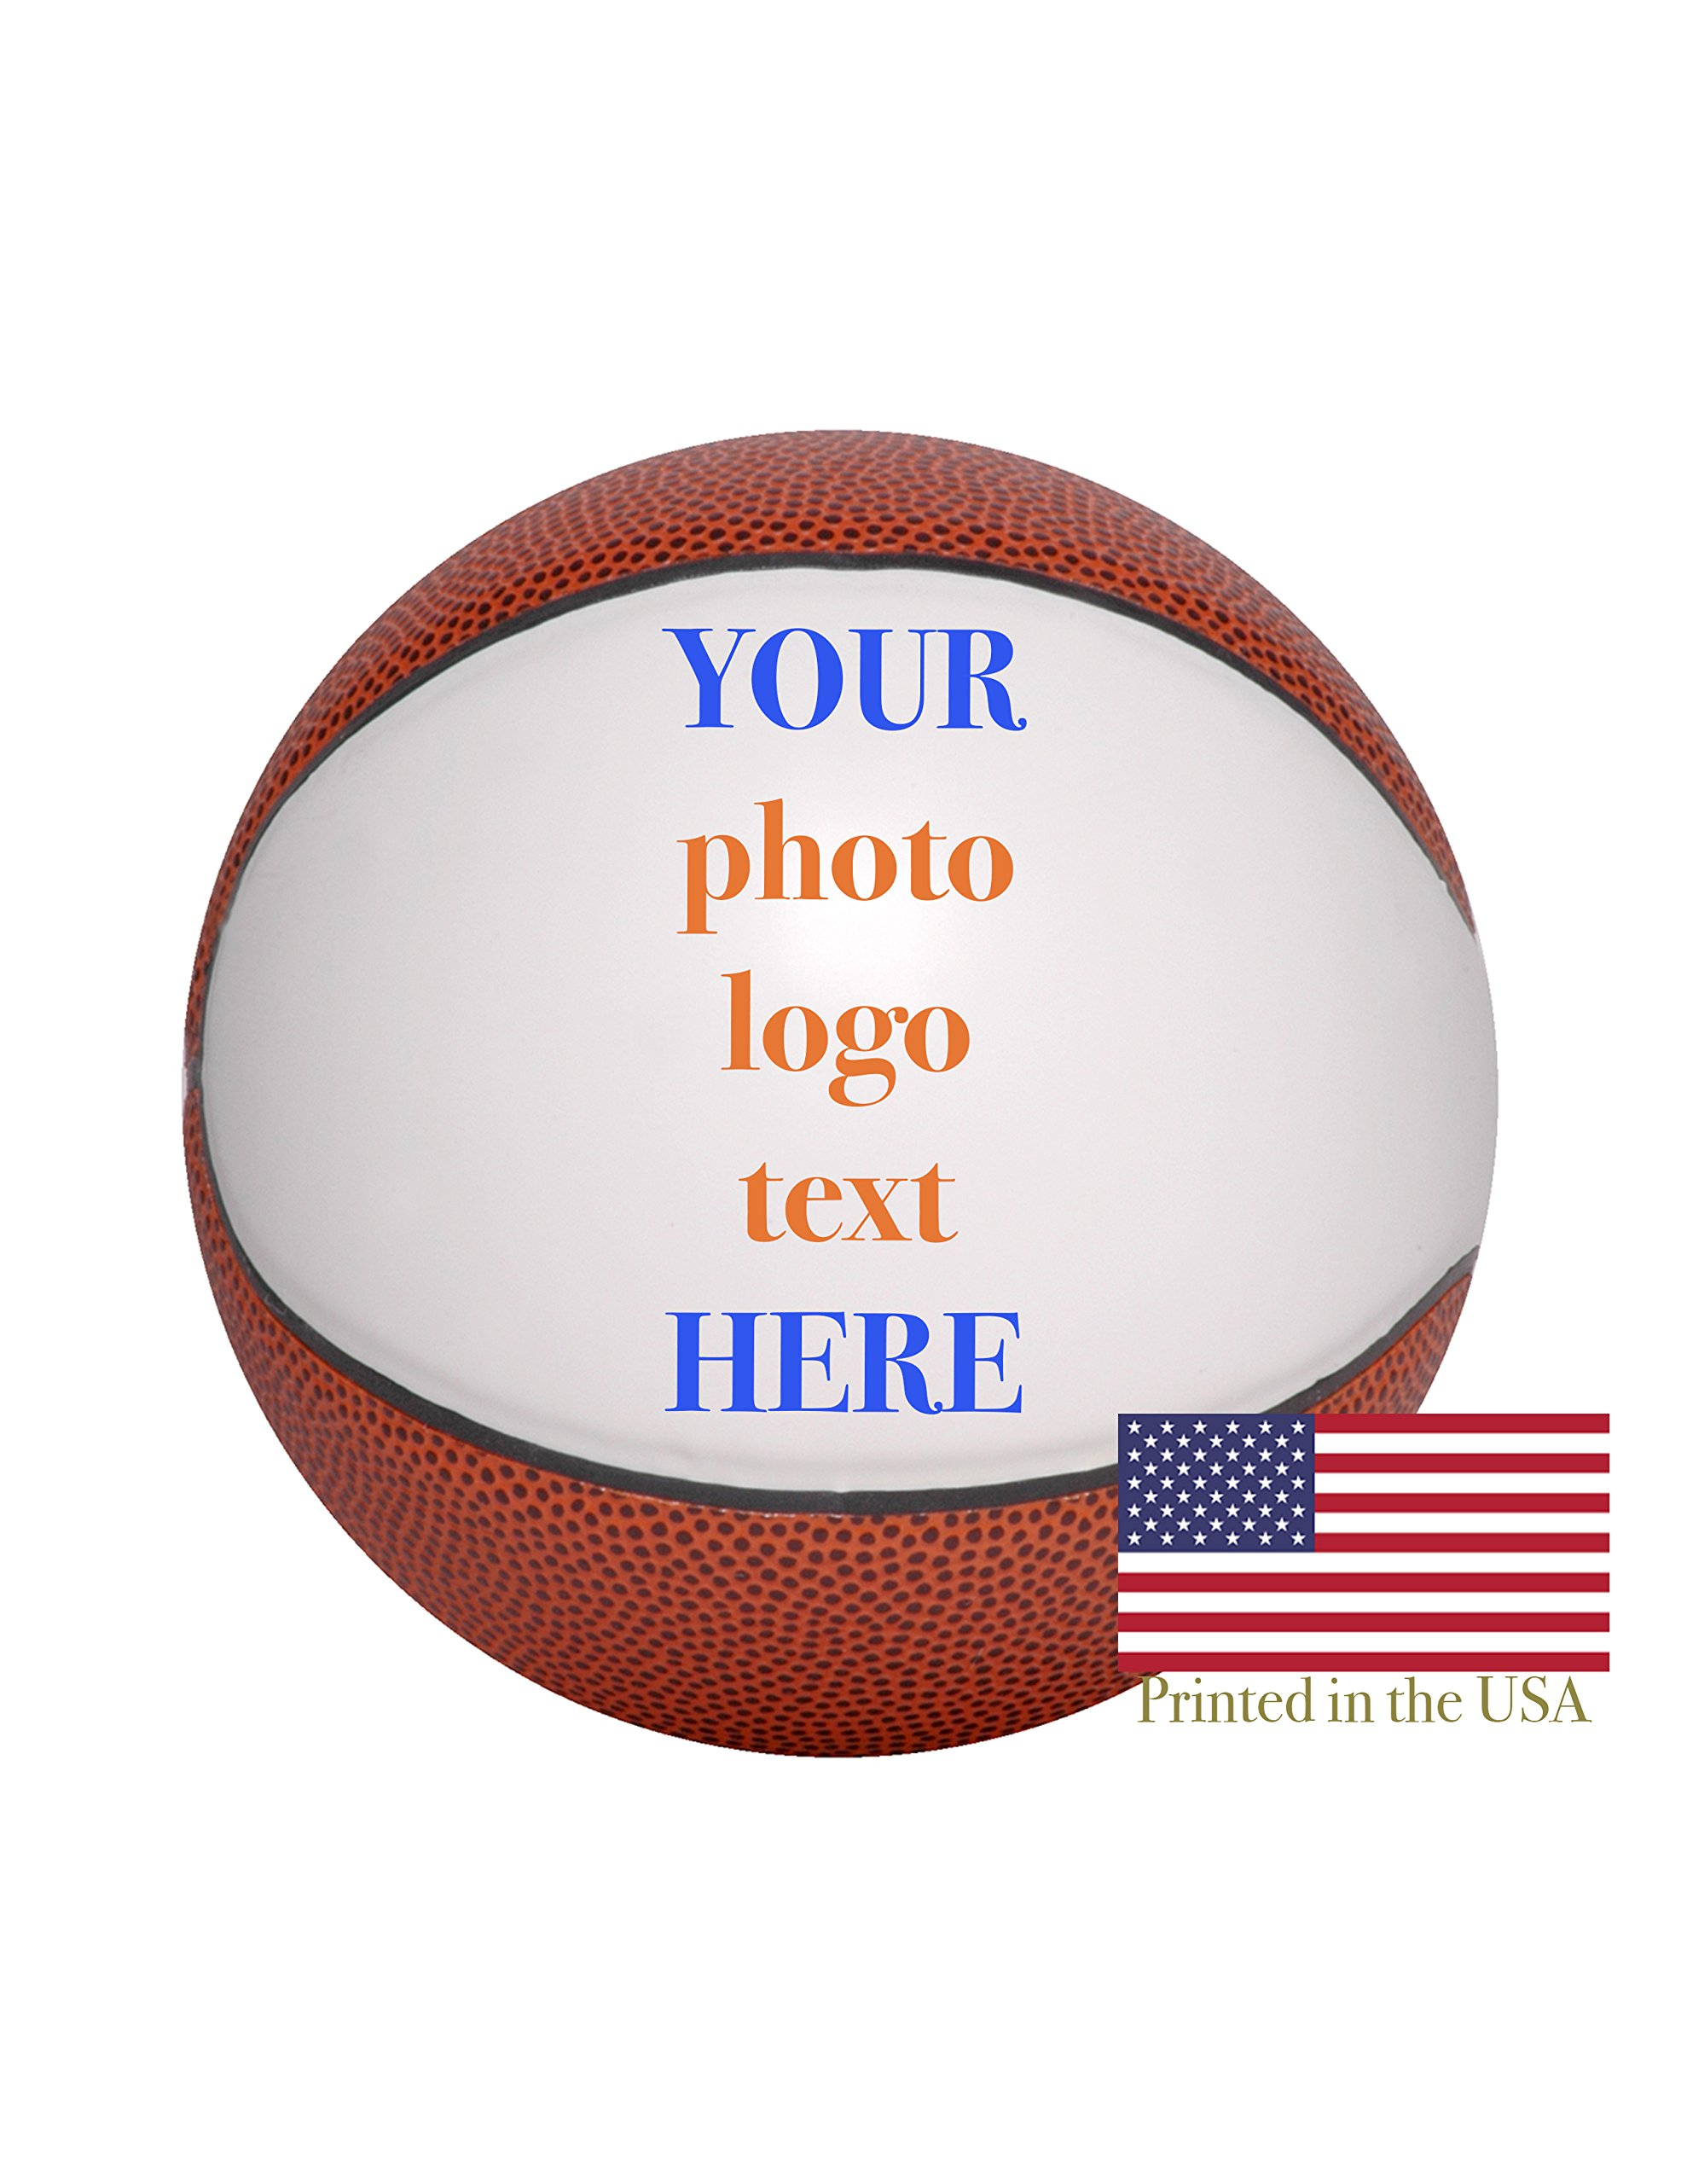 Custom Personalized Basketball 12 Inch Full Sized Basketball Ships Next Day, High Resolution Photos, Logos & Text on Basketball Balls for Trophies, Personalized Gifts